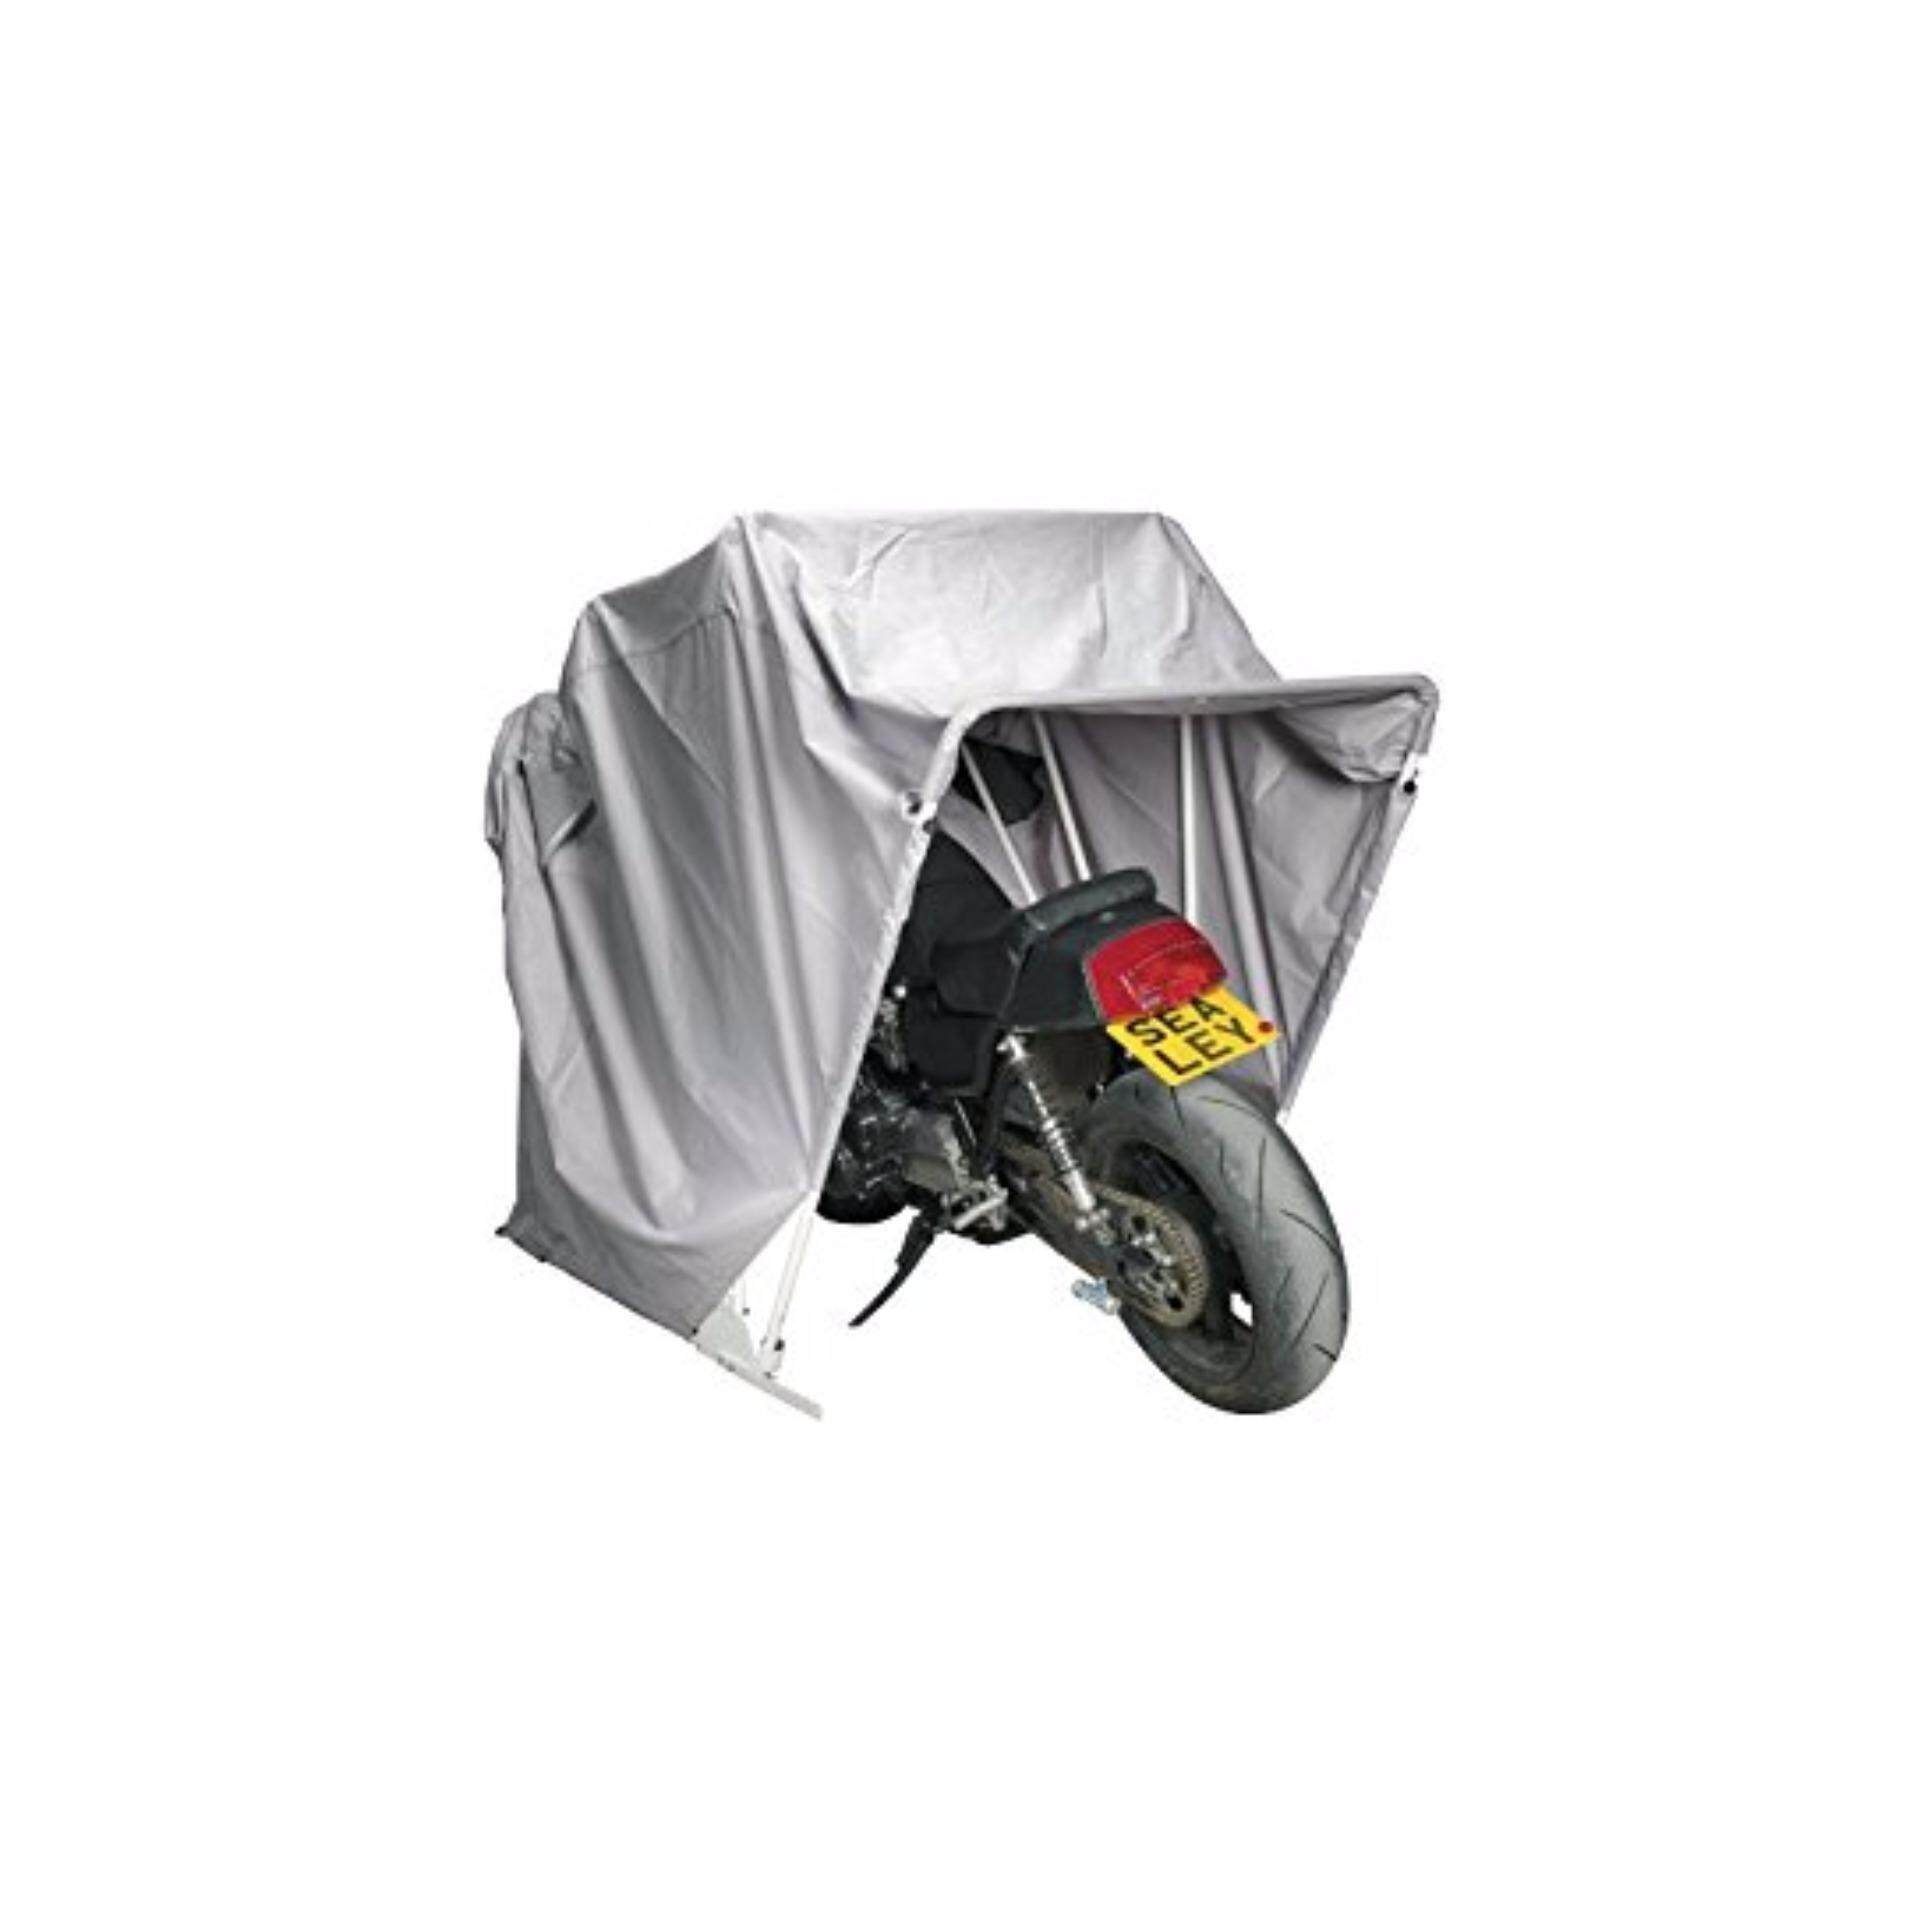 Sealey Motorcycle Storage Shelter